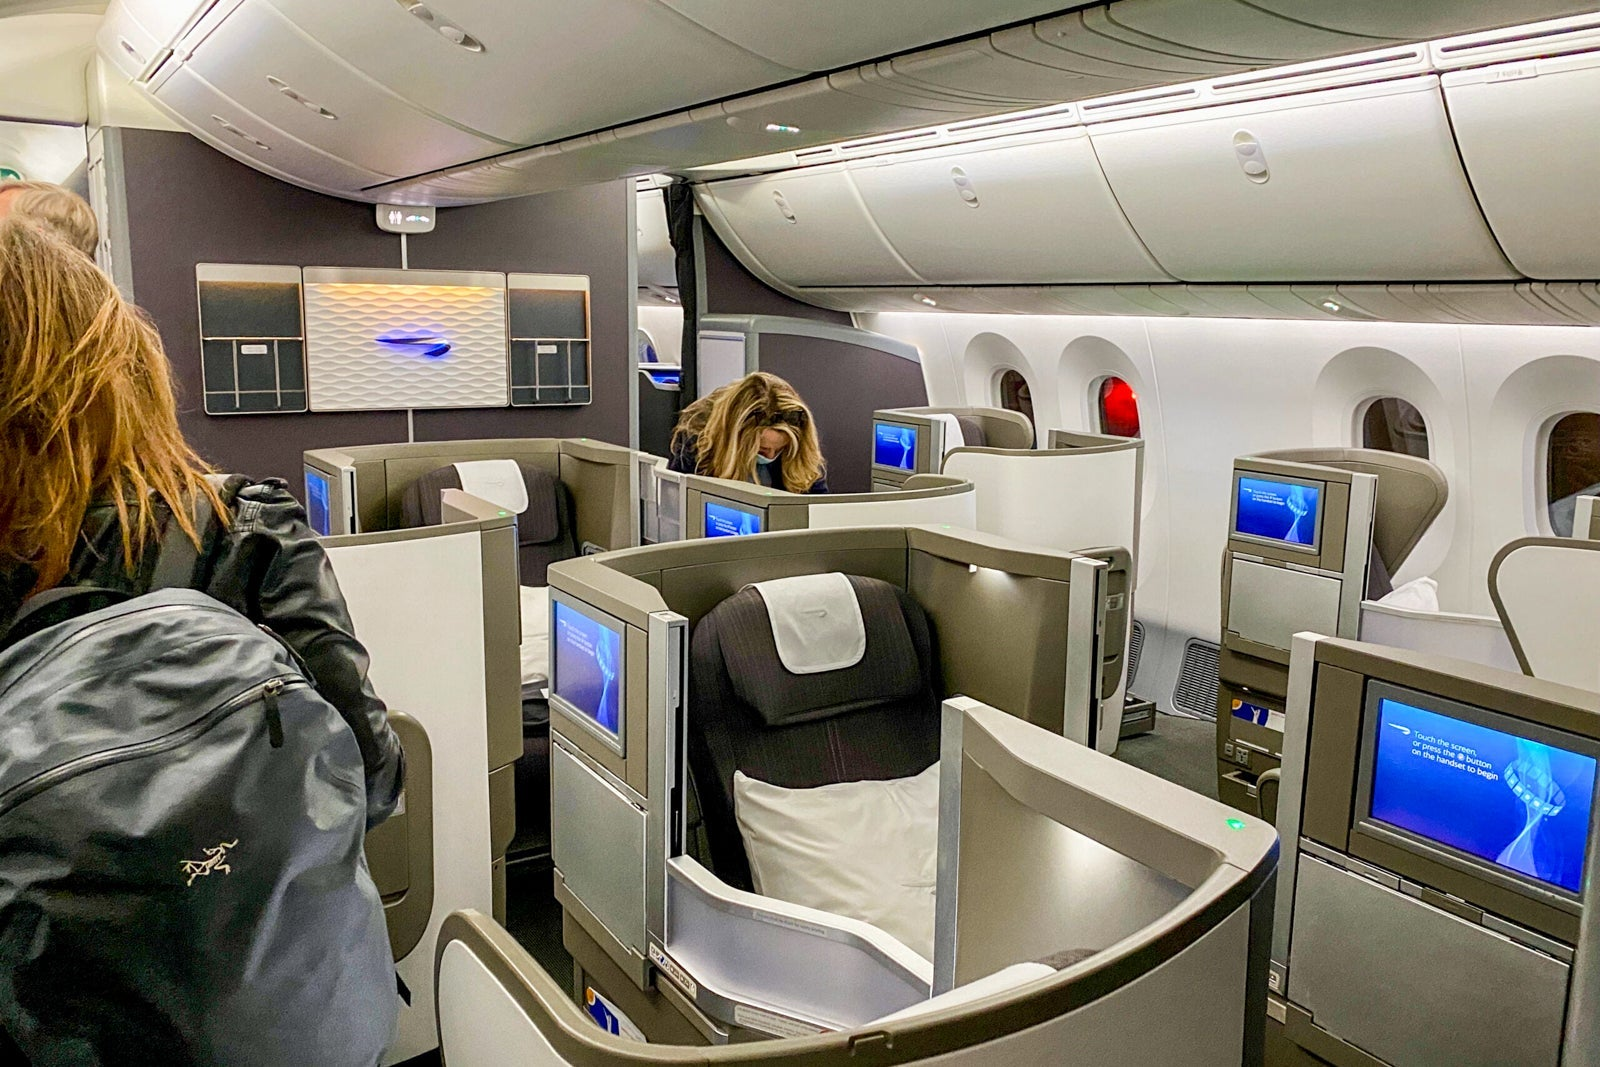 The best seat in a middling cabin: Reviewing British Airways' business class on the 787-9 from Boston - The Points Guy UK